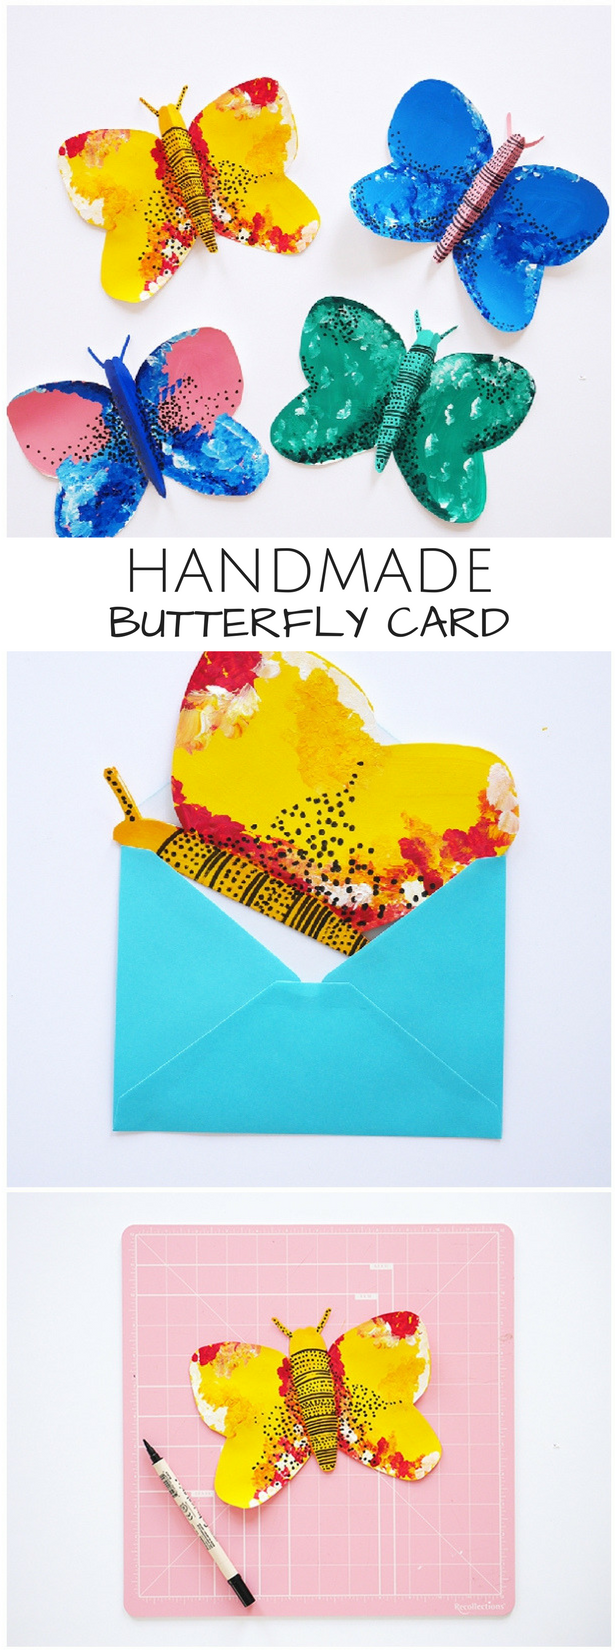 Beautiful painted handmade butterfly cards fun art projects